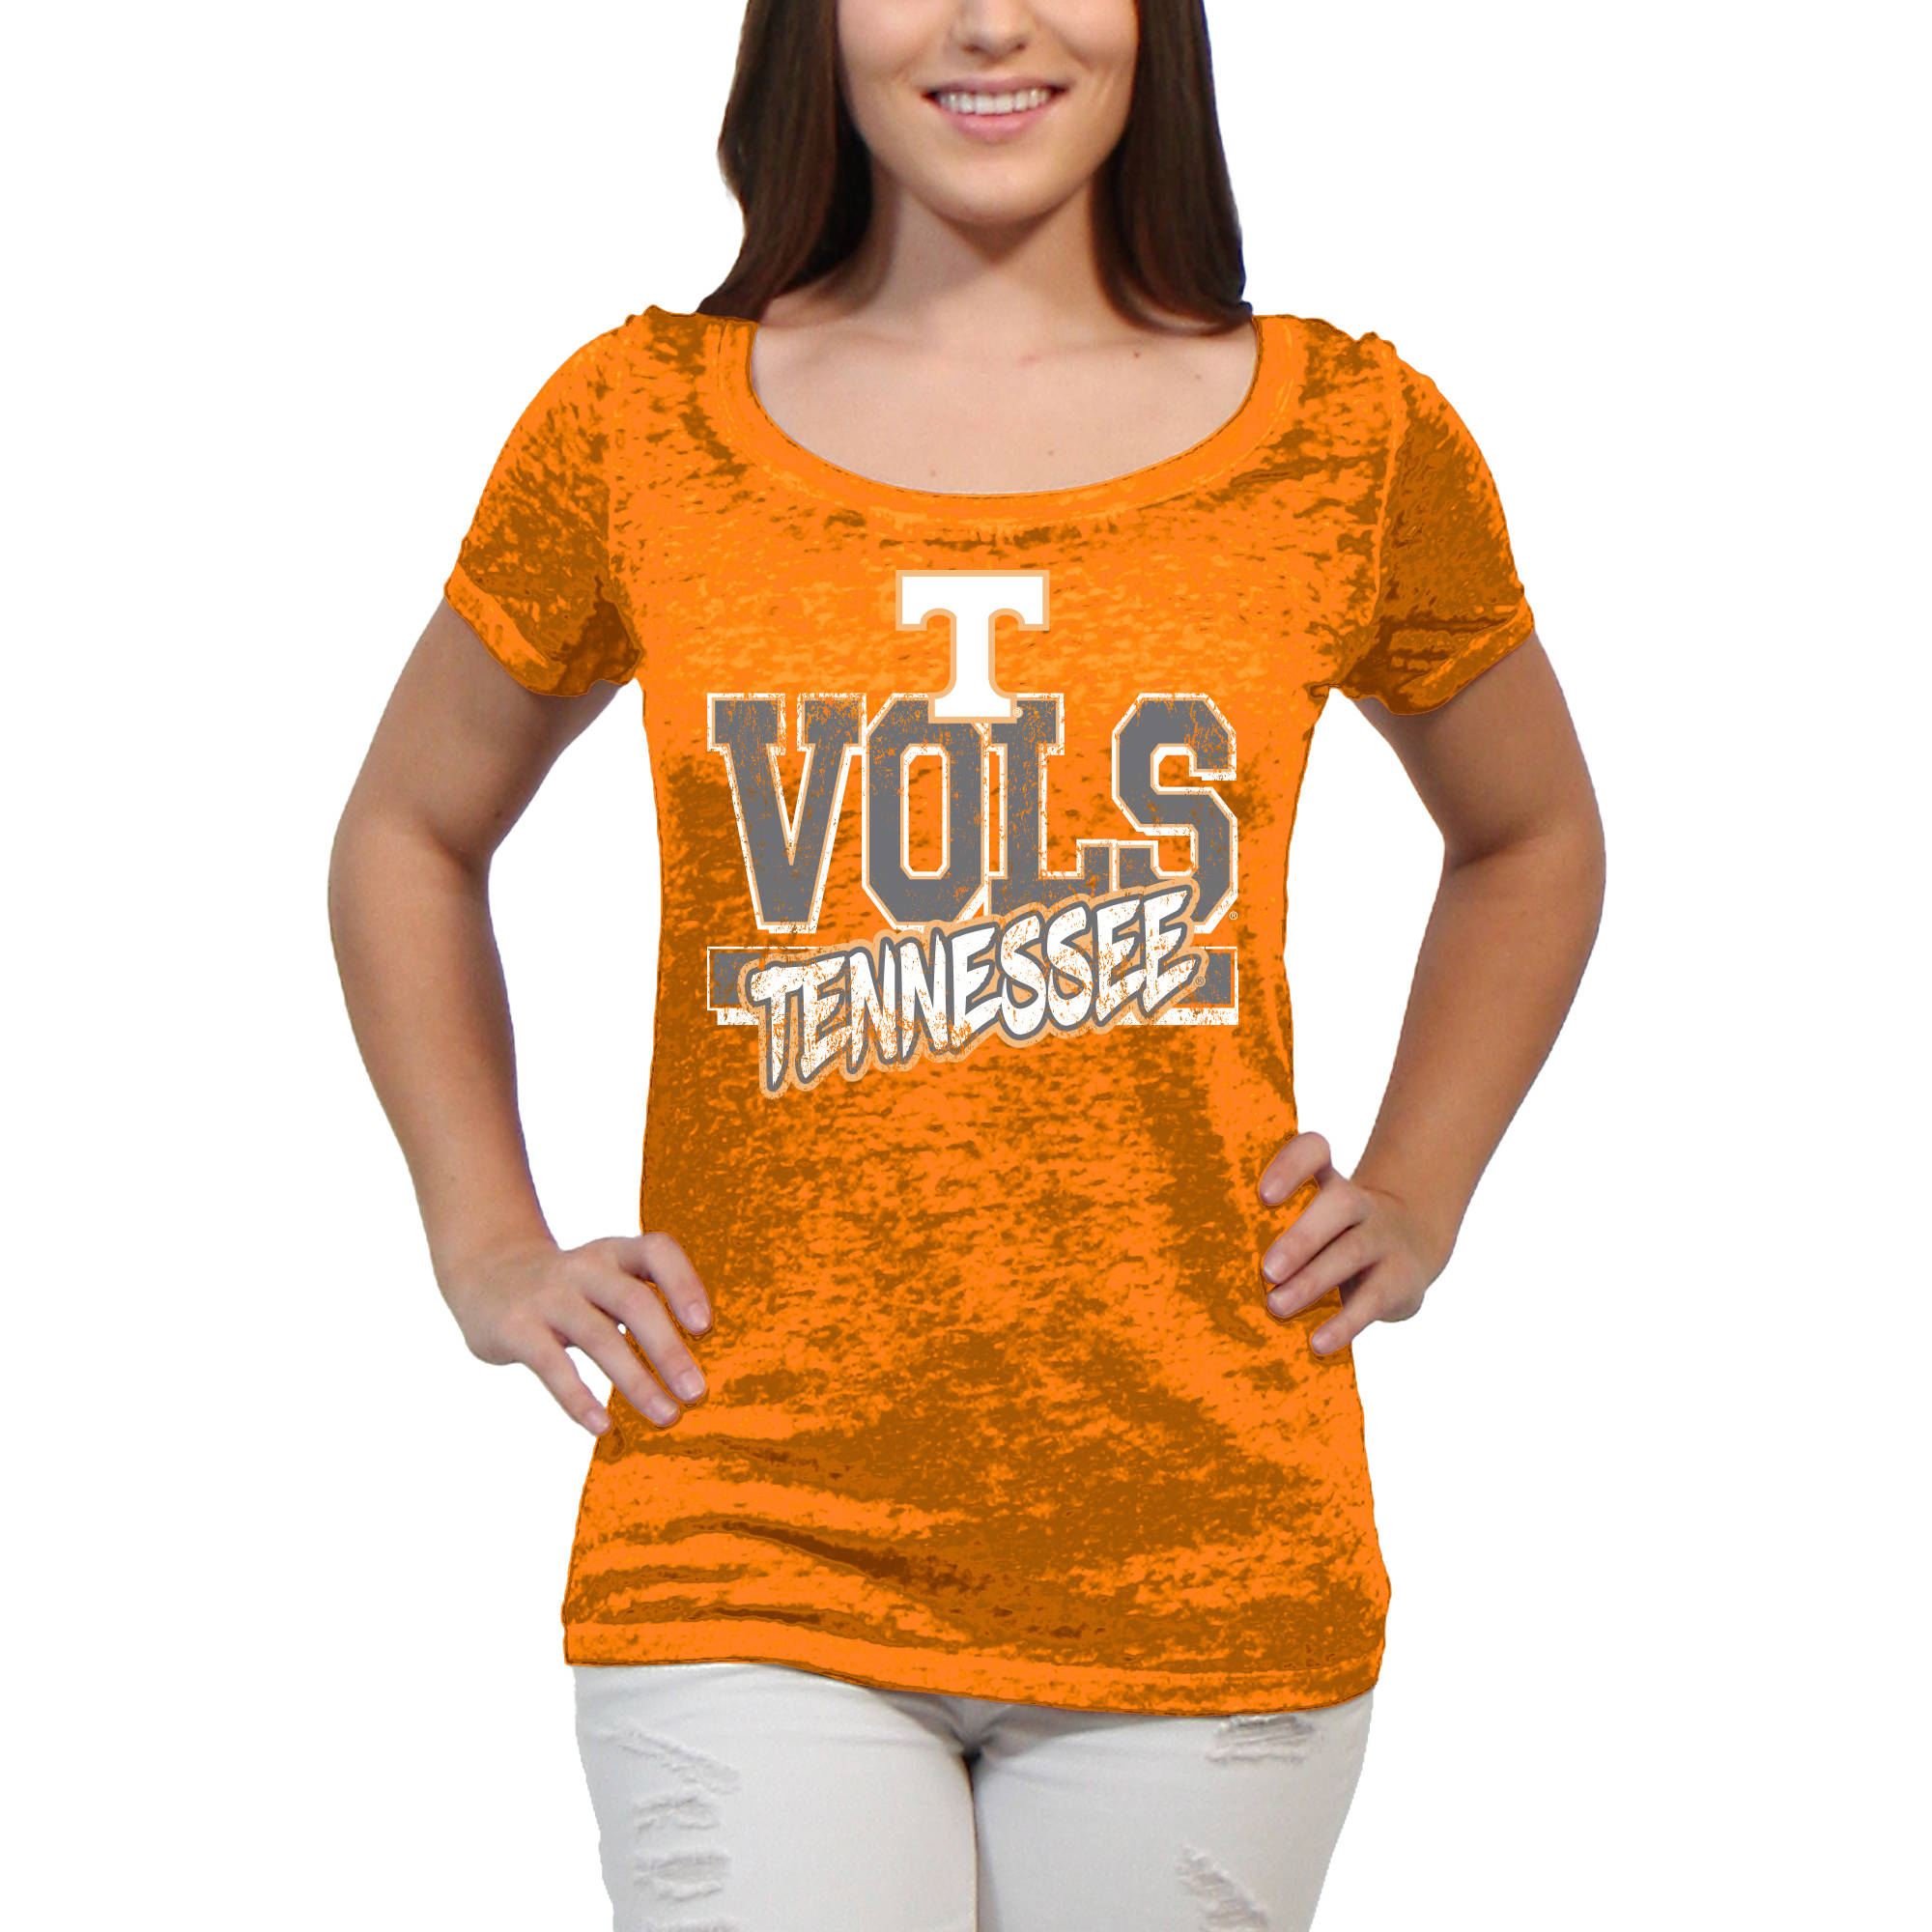 Tennessee Volunteers Block Graffiti Women'S/Juniors Team Short Sleeve Scoop Neck Tee Shirt